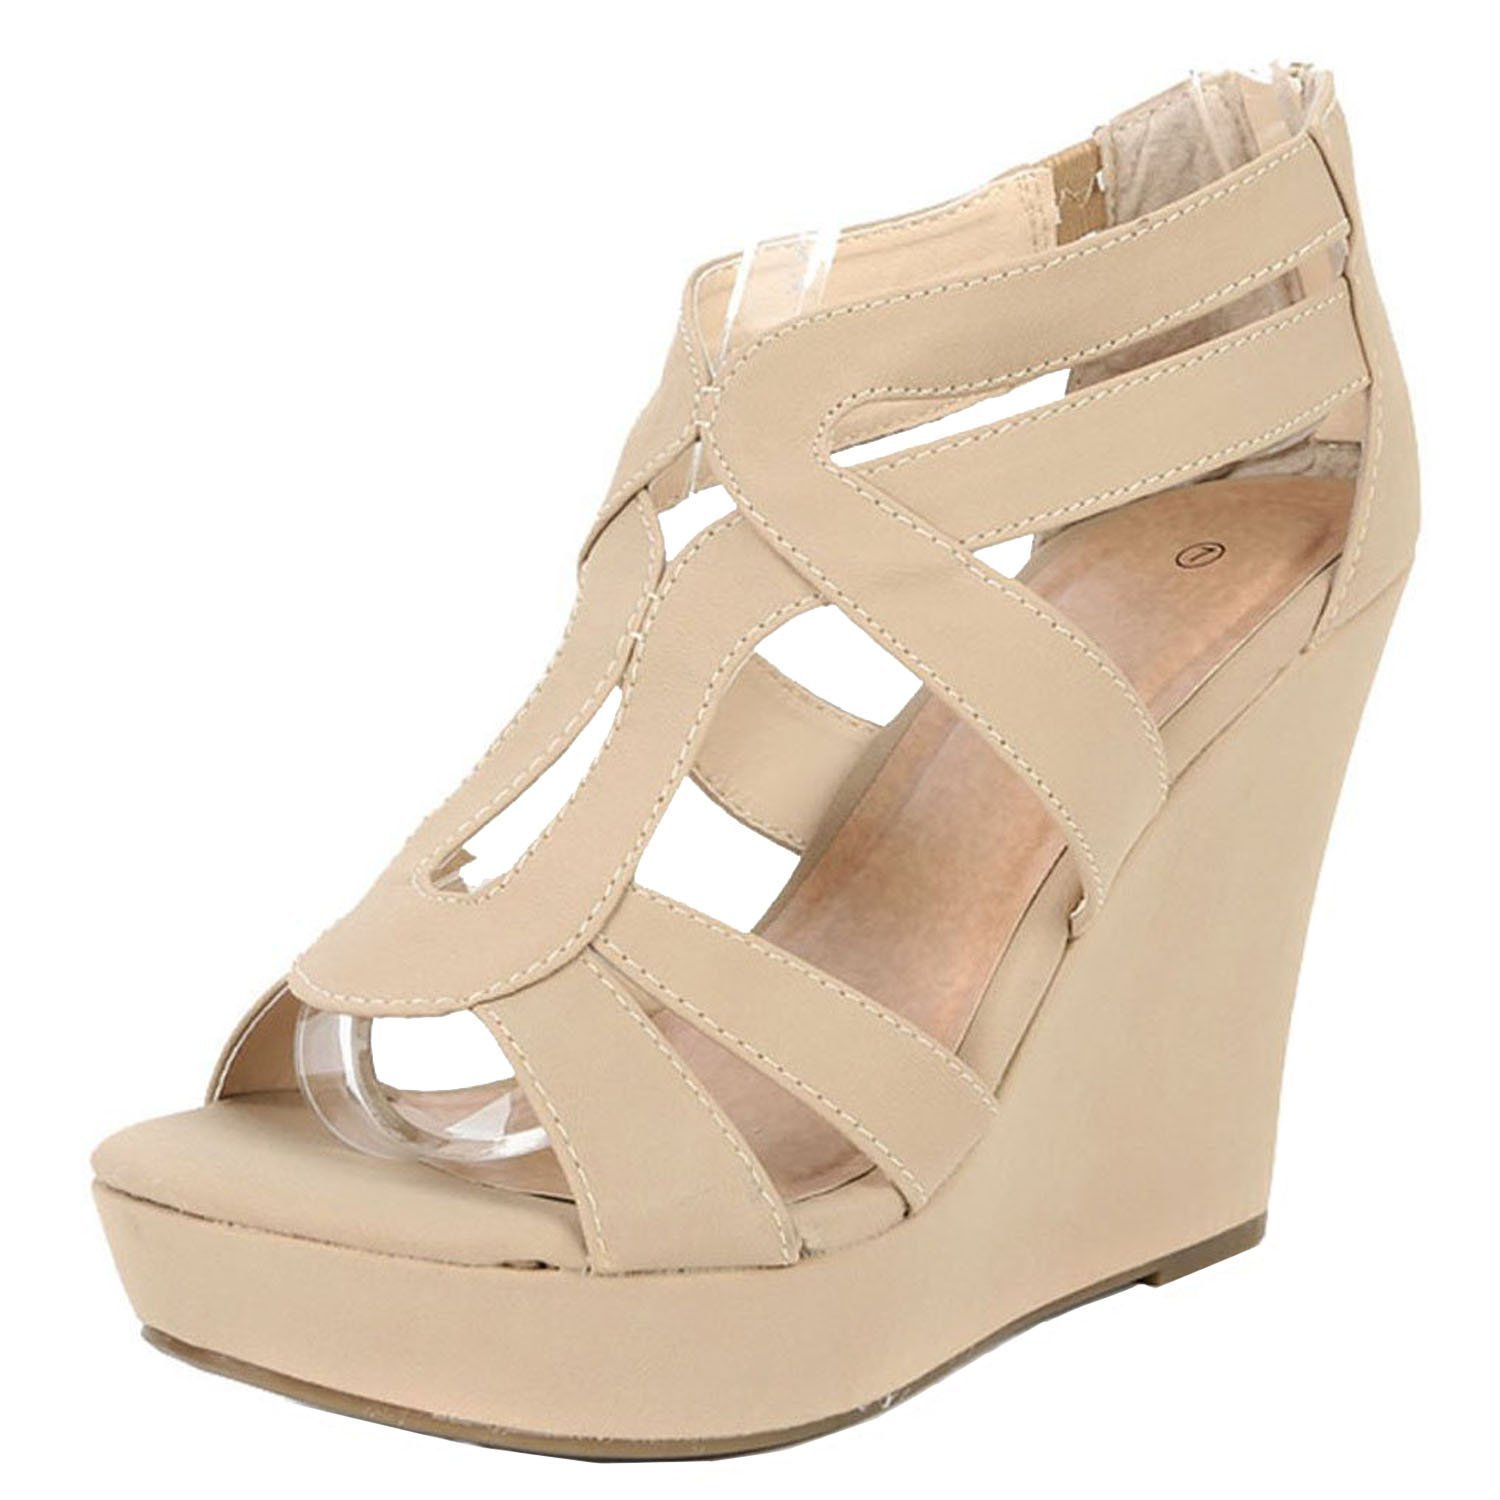 Top Moda Womens Lindy-3 Platform Sandals, Beige TS 8.5